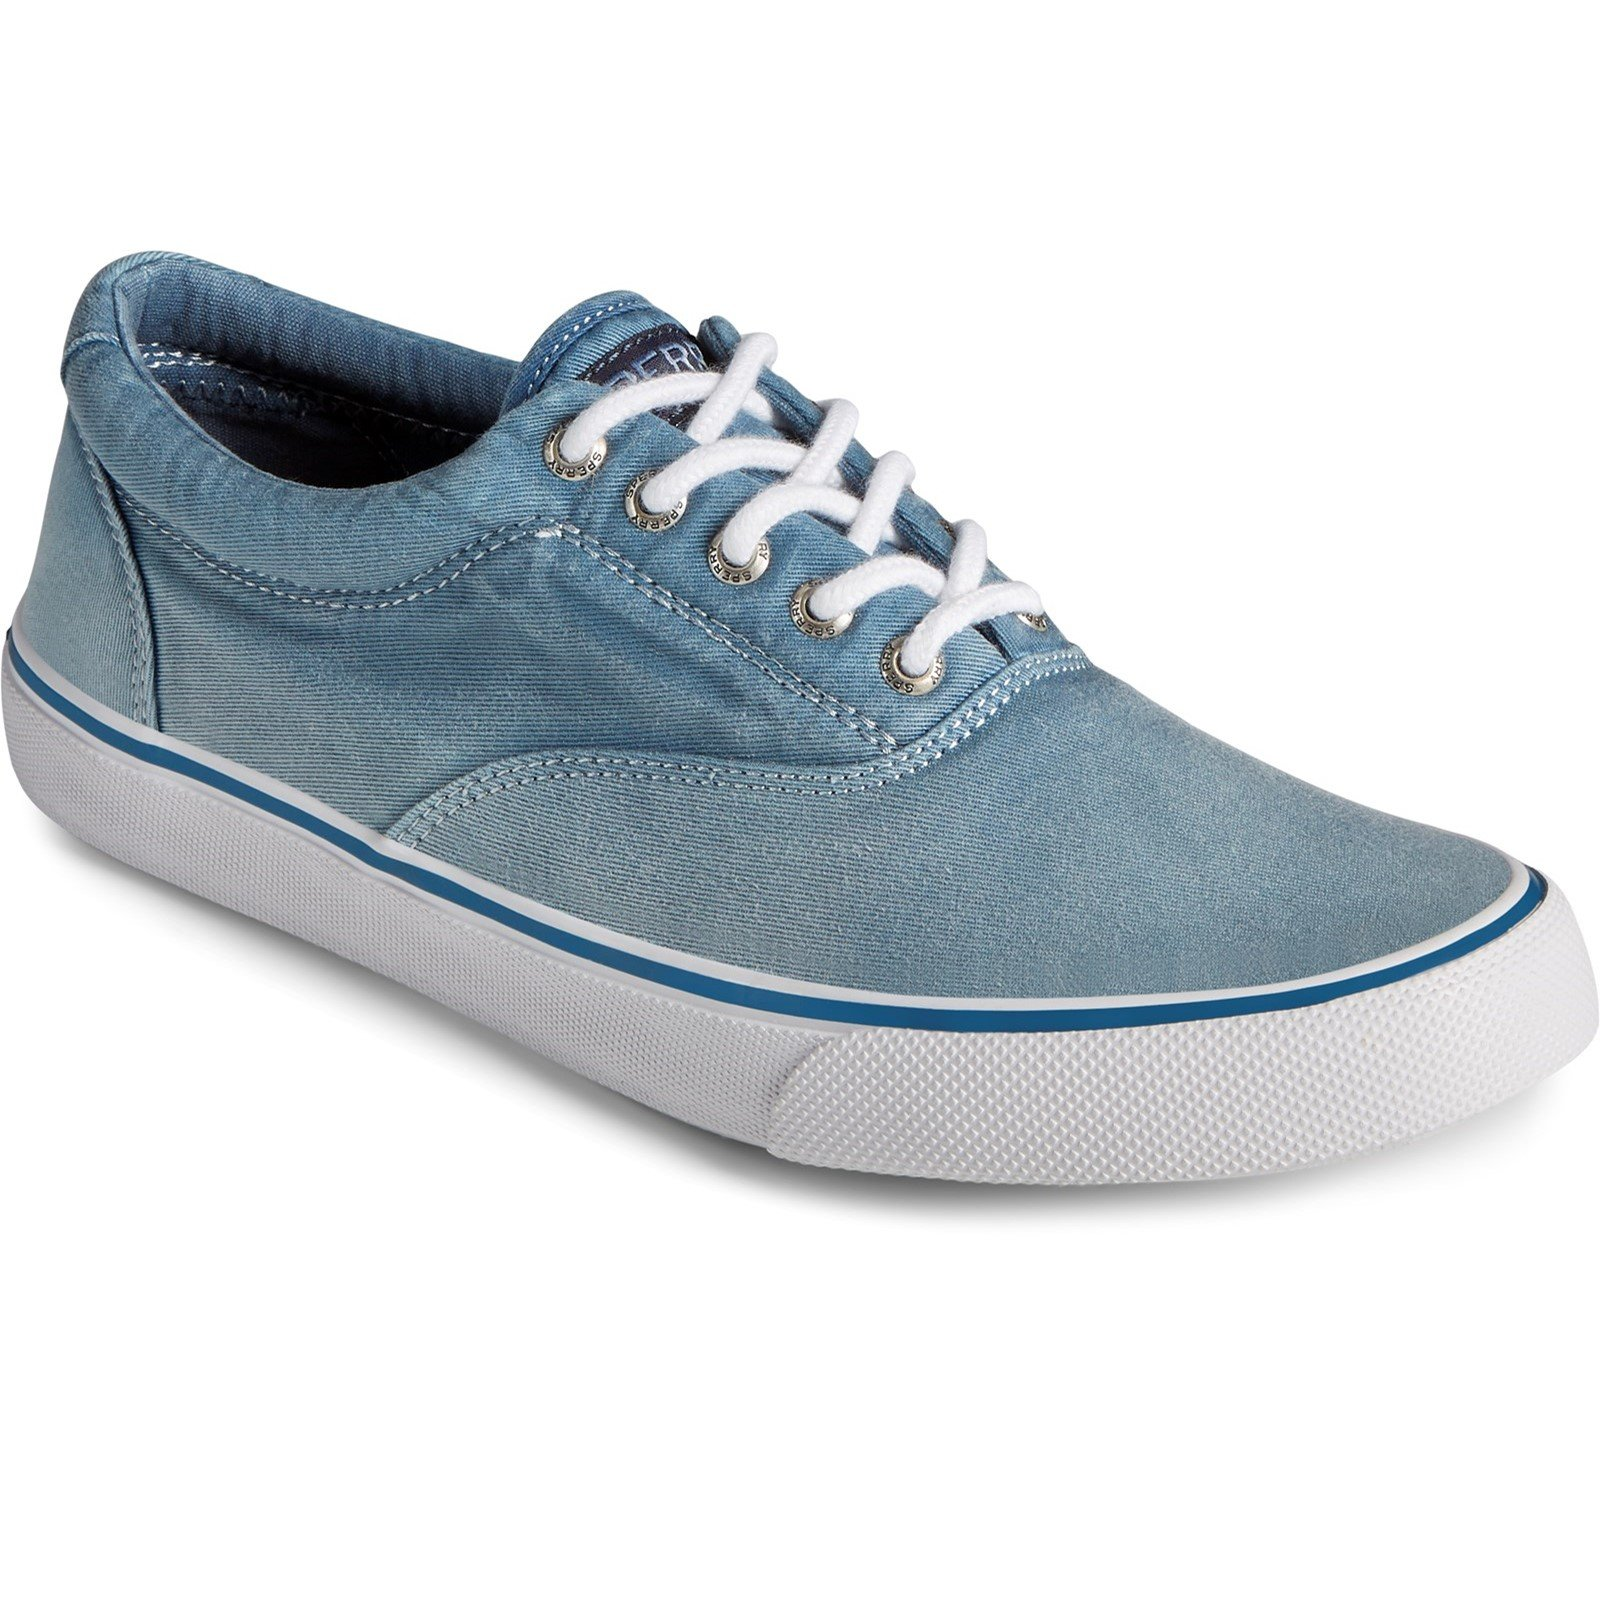 Sperry Men's Striper II CVO Ombre Lace Trainer Various Colours 32932 - Navy 9.5